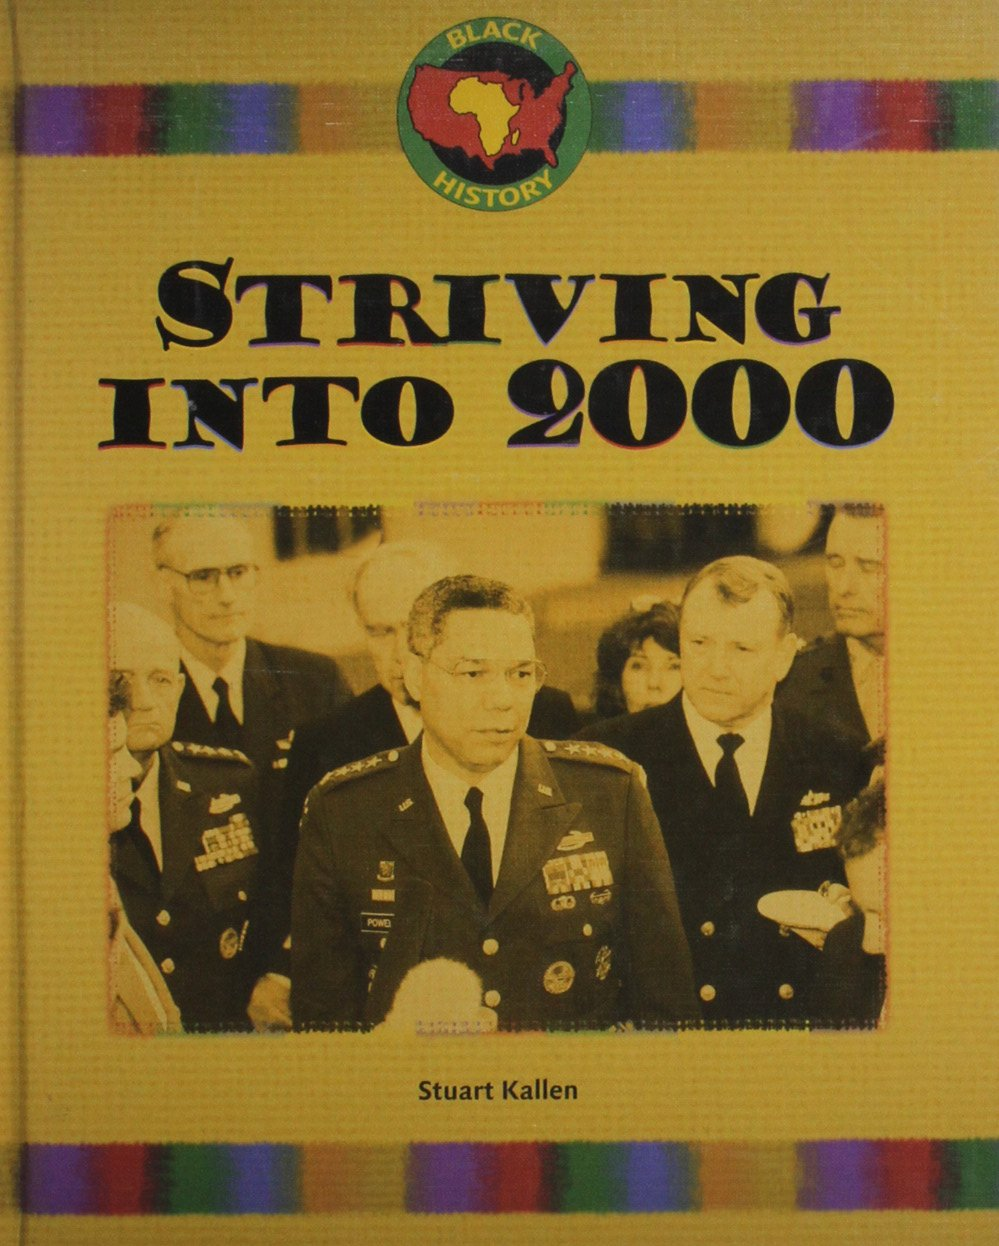 Striving into 2000 (Black History)